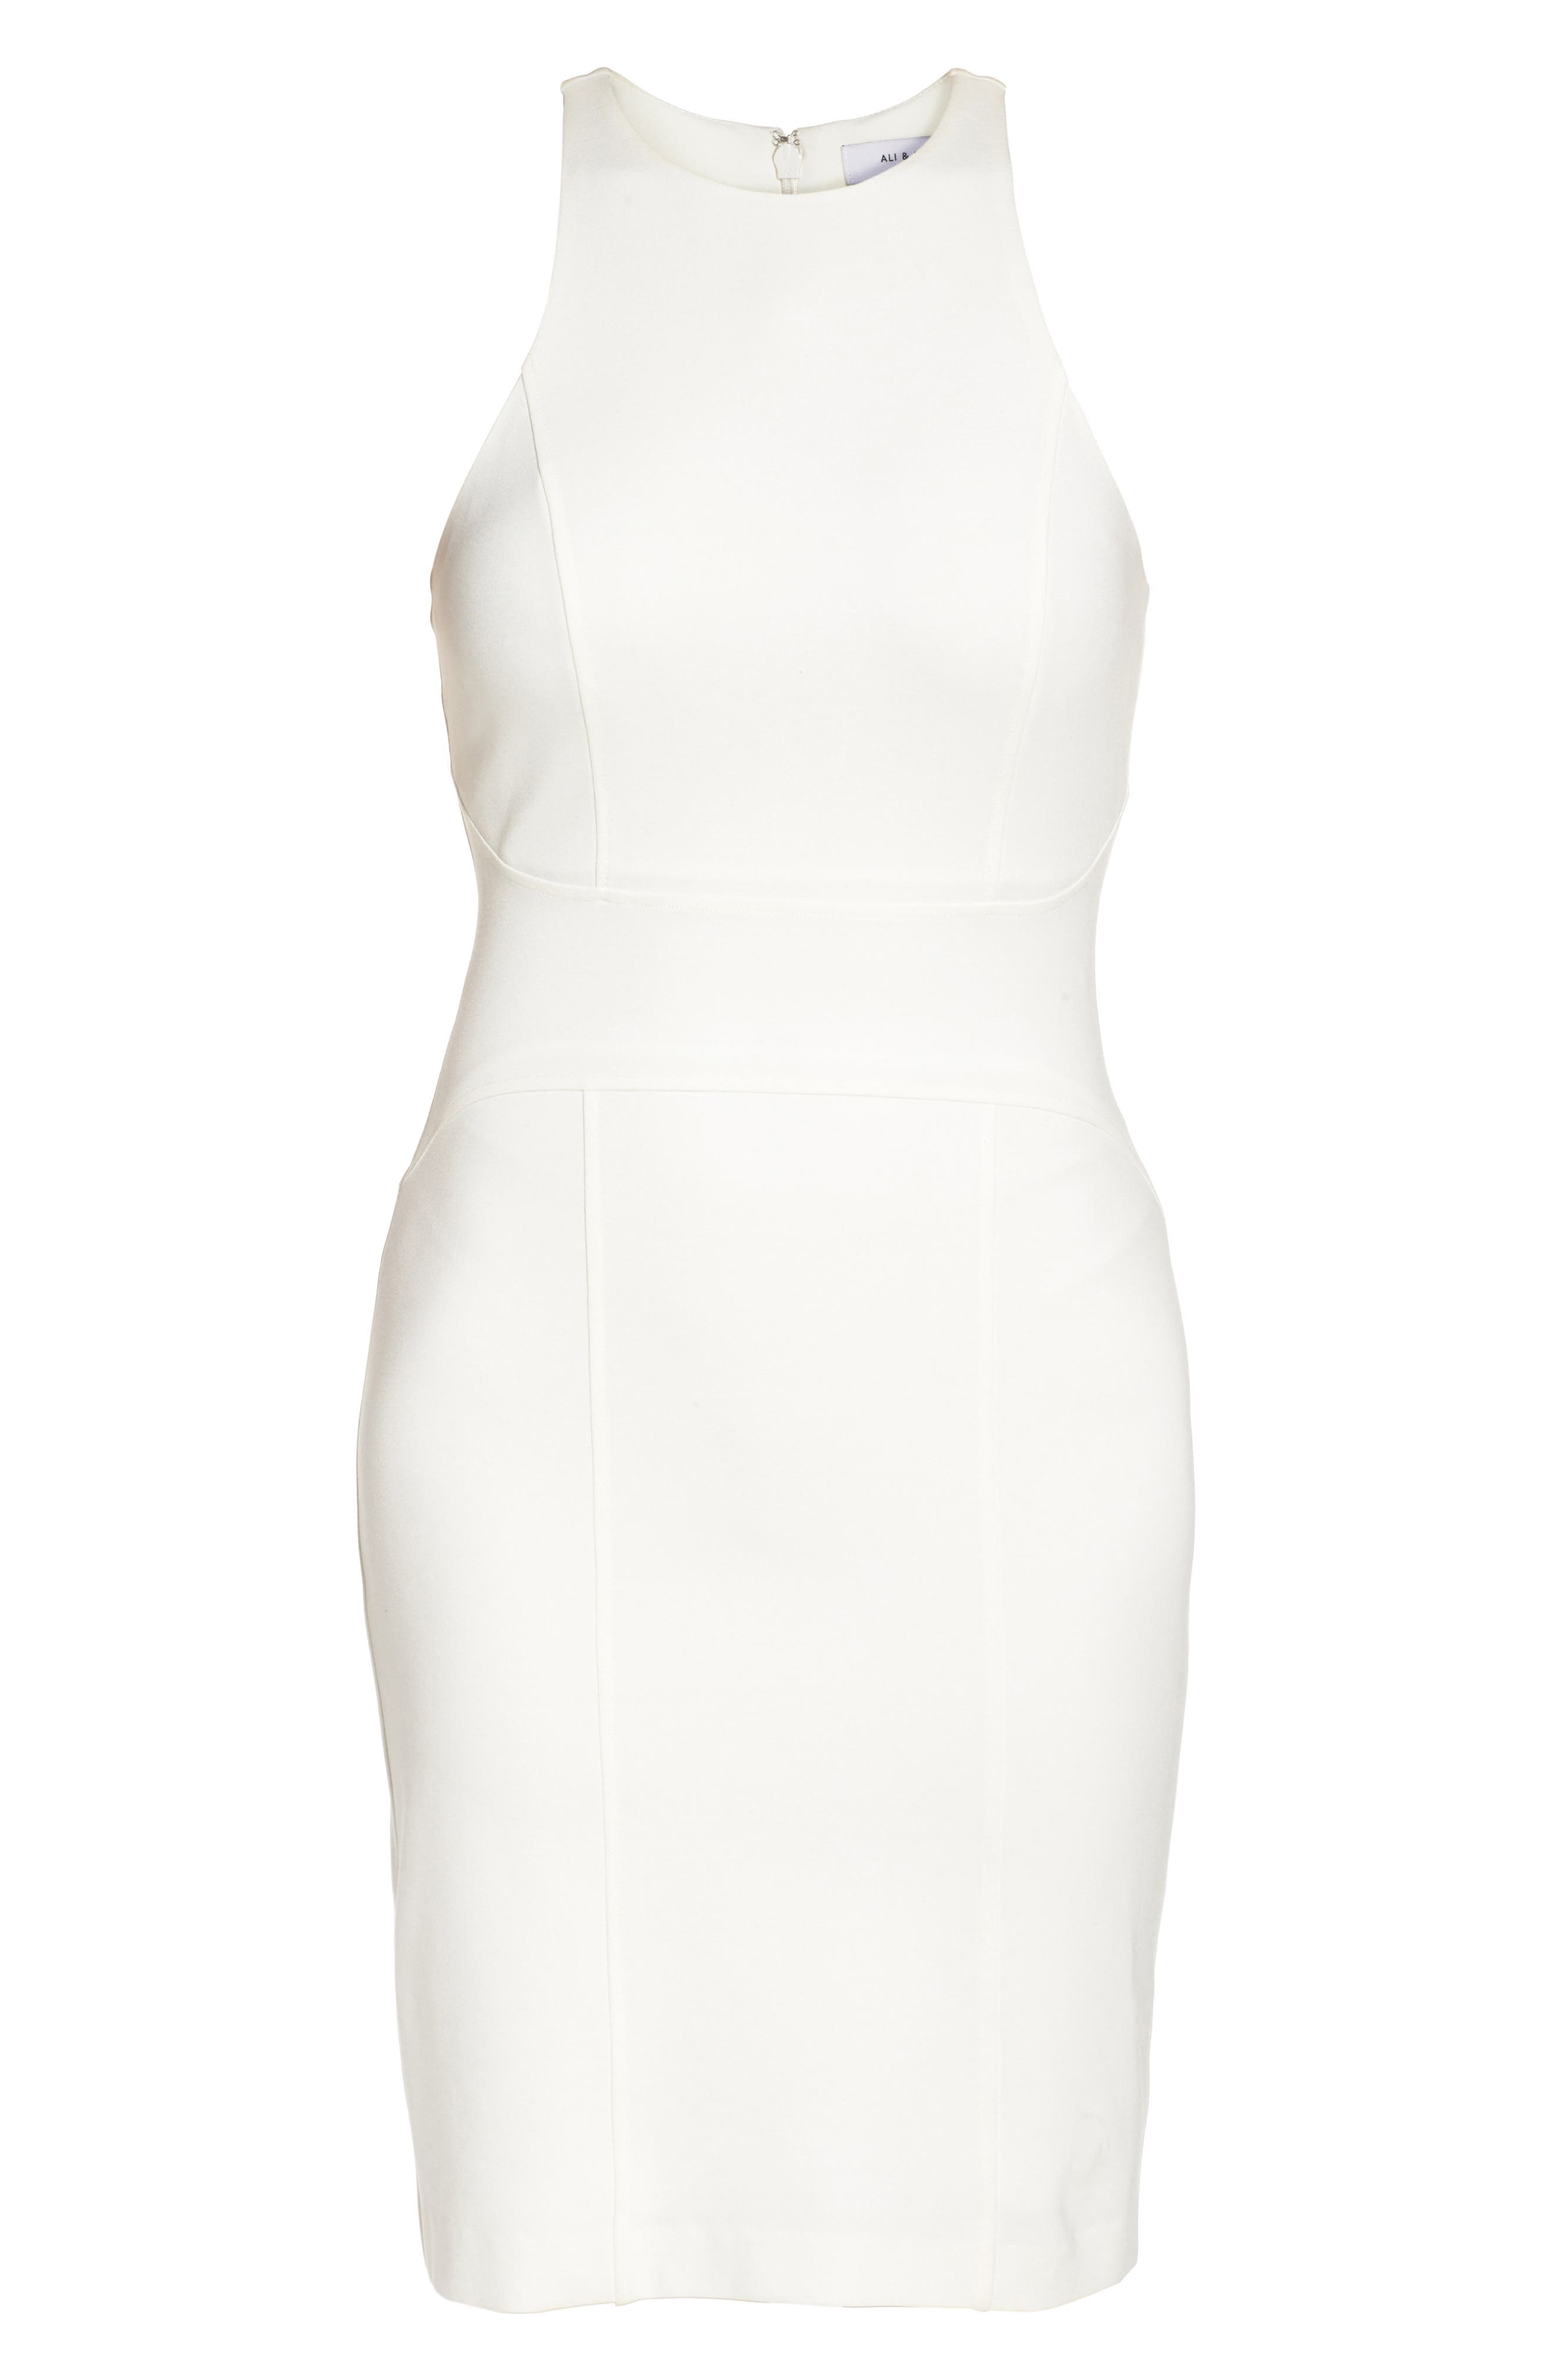 You Ruin Me Body-Con Dress,                             Alternate thumbnail 8, color,                             WHITE